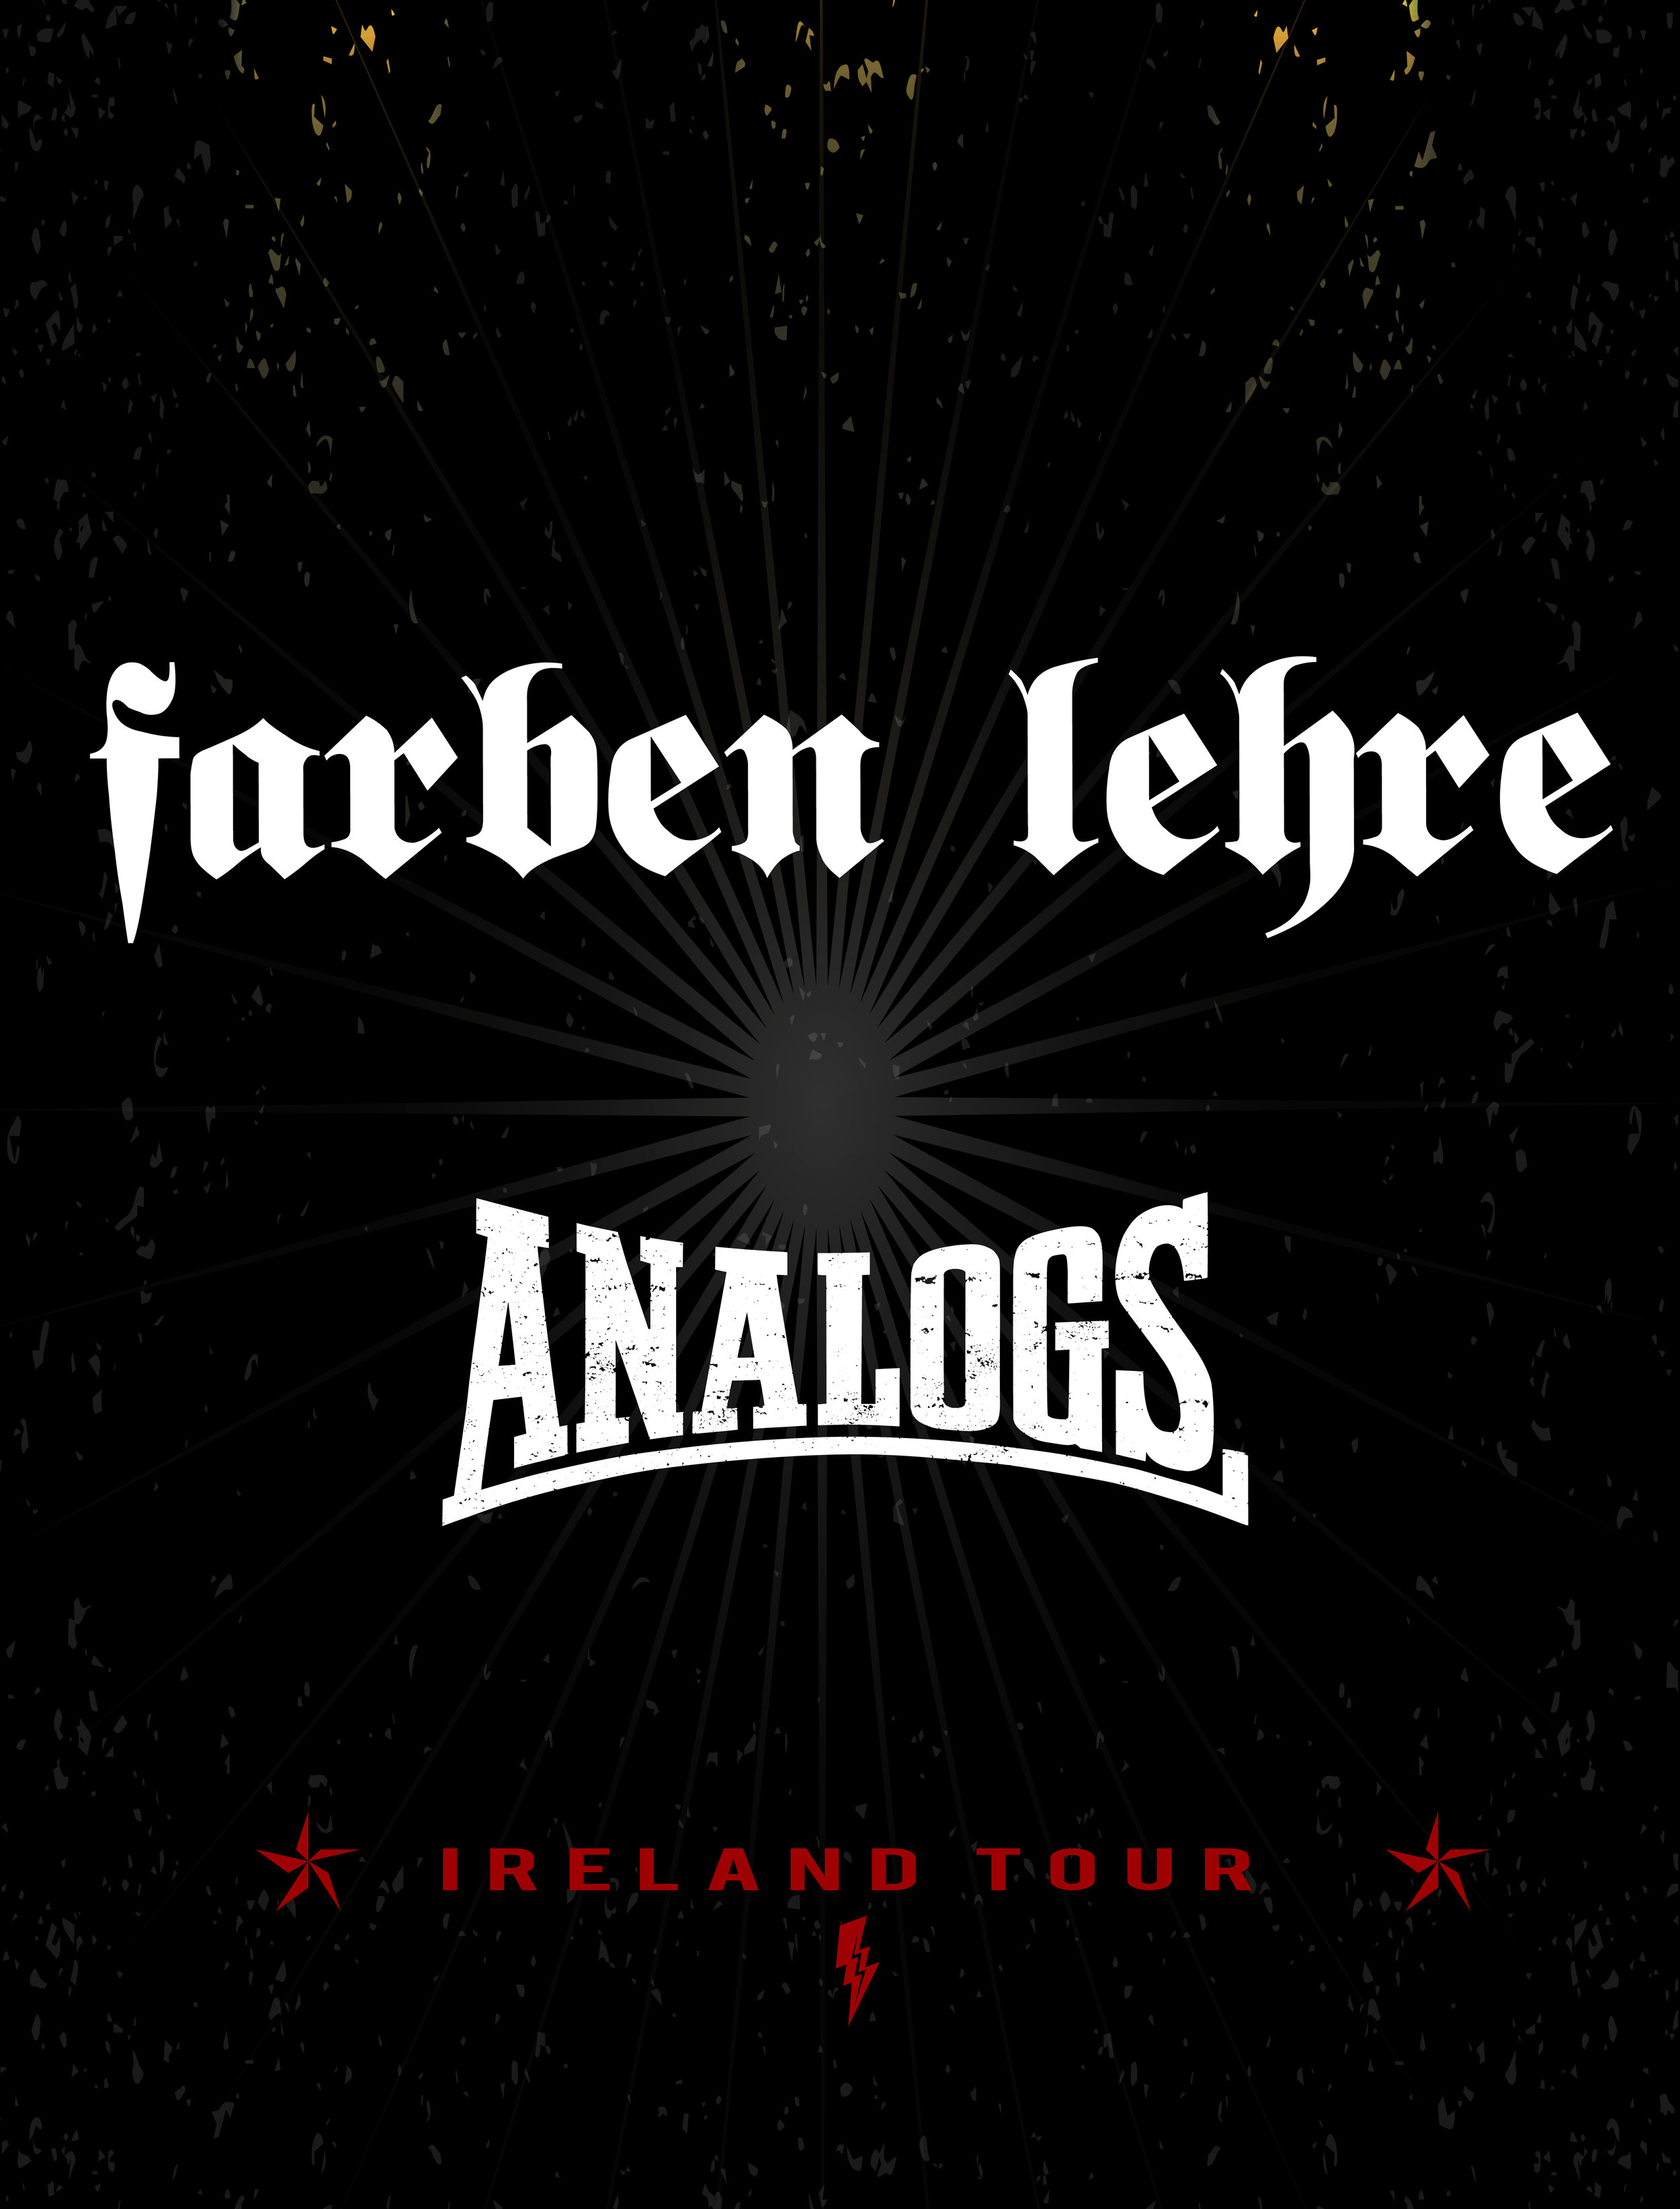 Analogs & Farben Lehre - Dublin - Impressario: Alternative 4